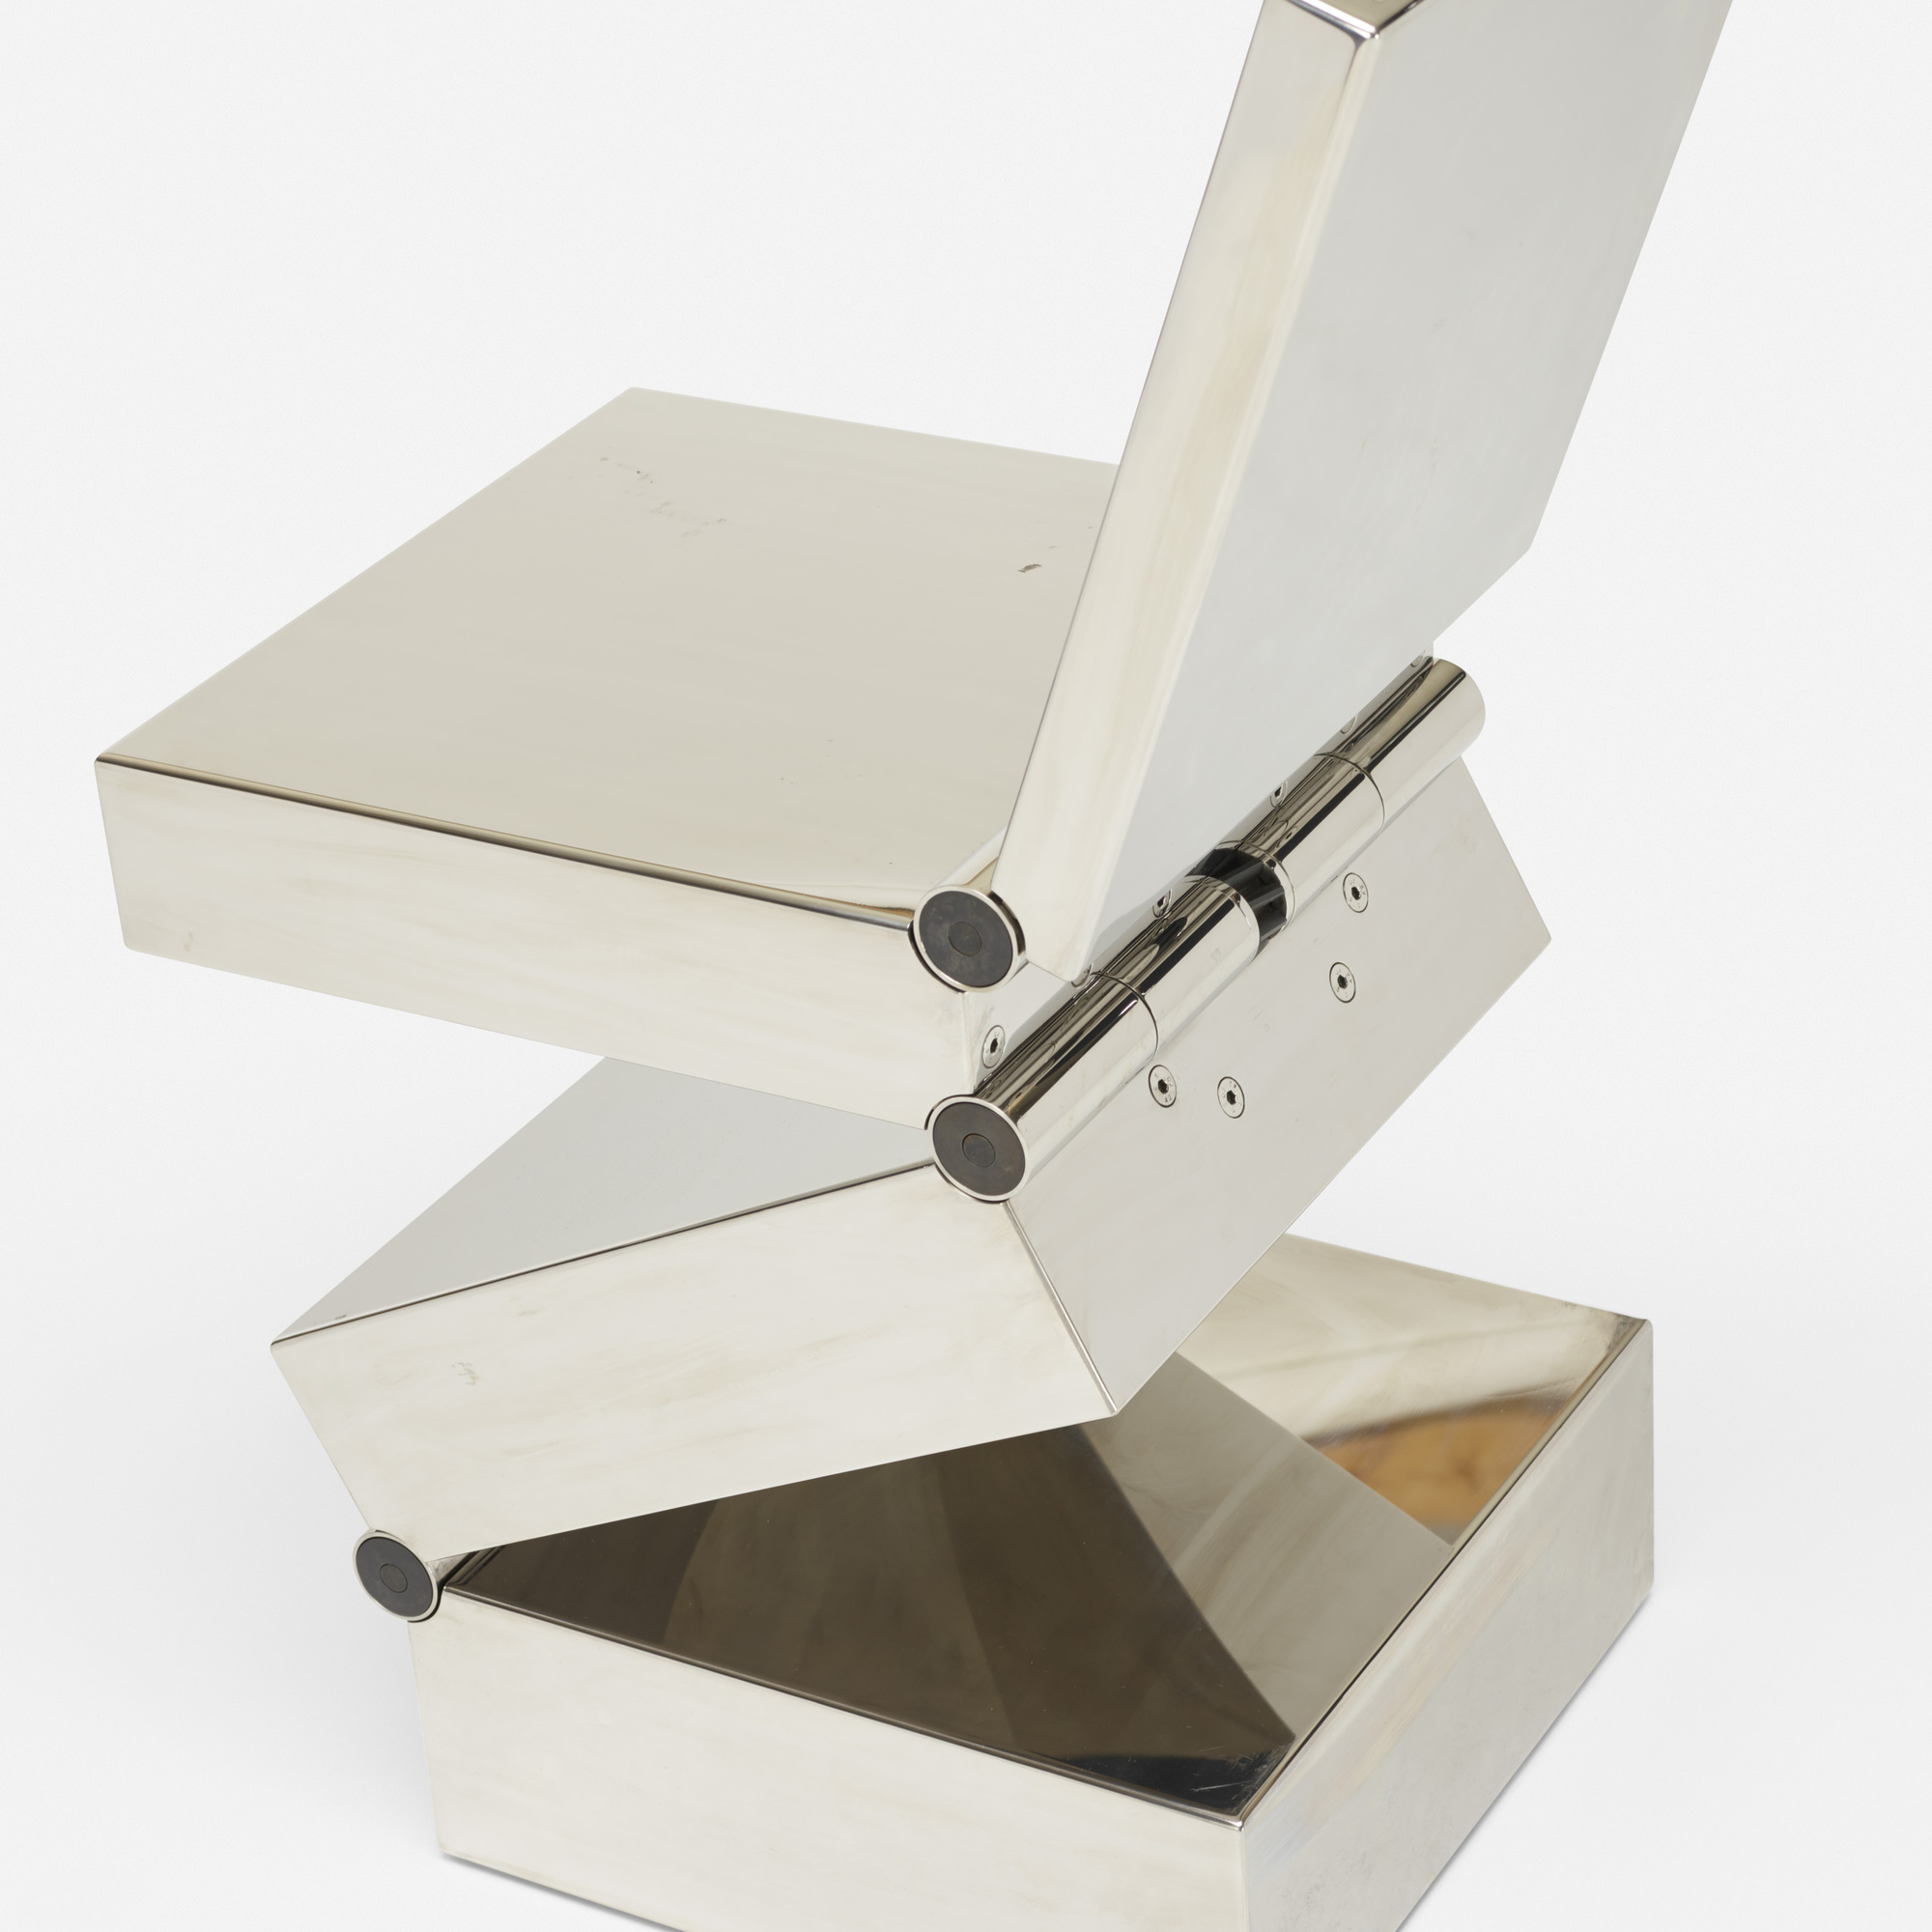 276: Ron Arad / Box in Four Movements chair (4 of 5)